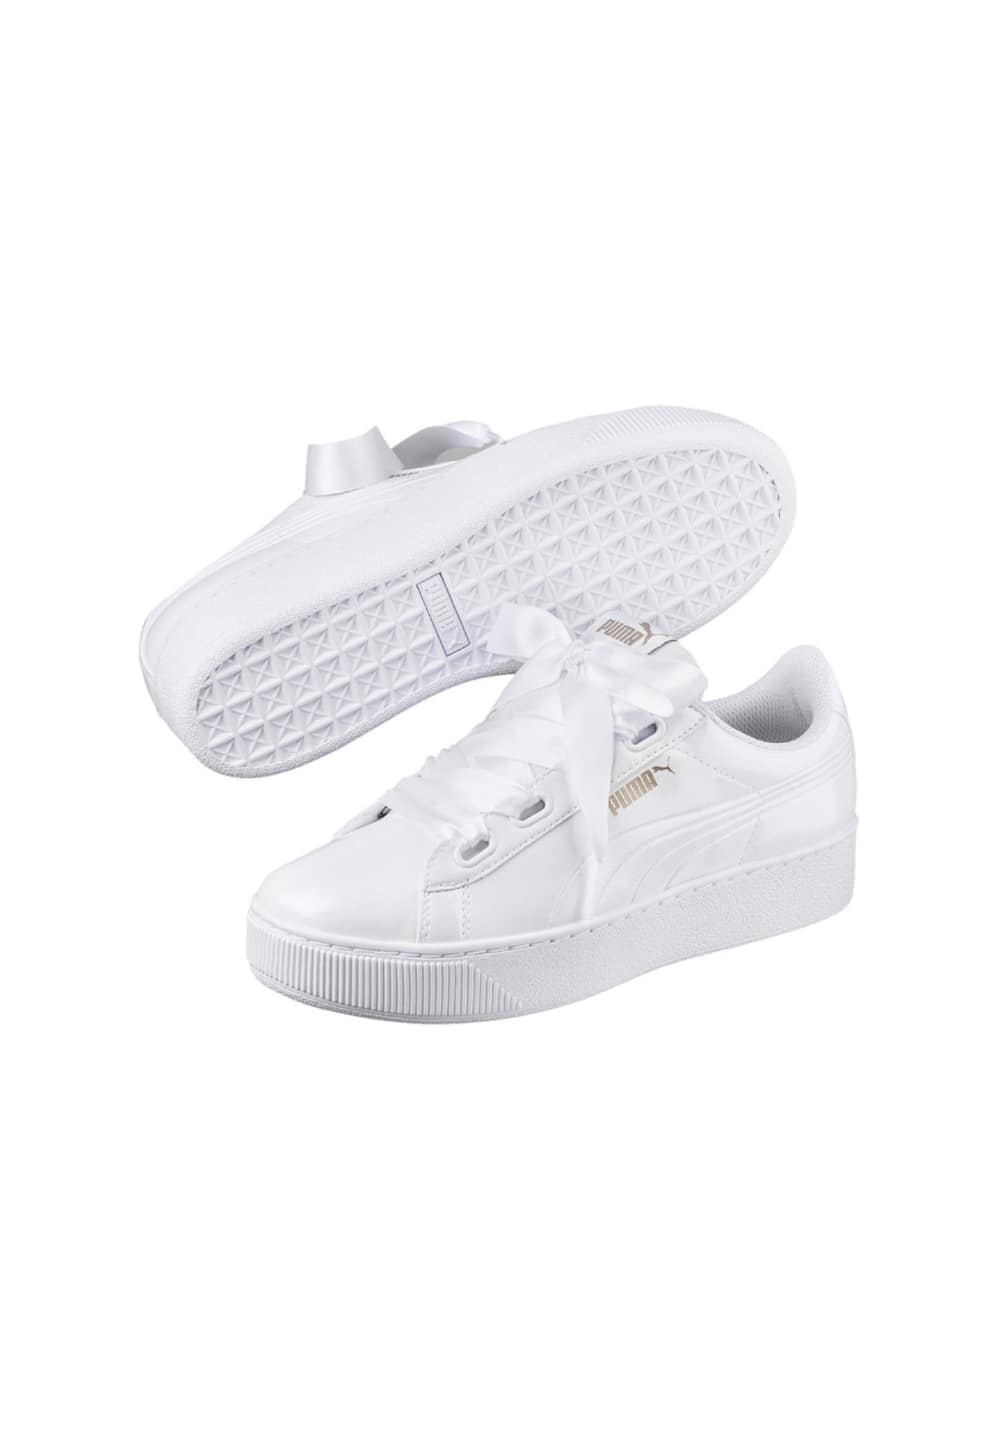 2b8e53799cd Home · Shop · Puma Vikky Platform Ribbon P - Sneaker for Women - White.  Back to Overview. 1  2  3. Previous